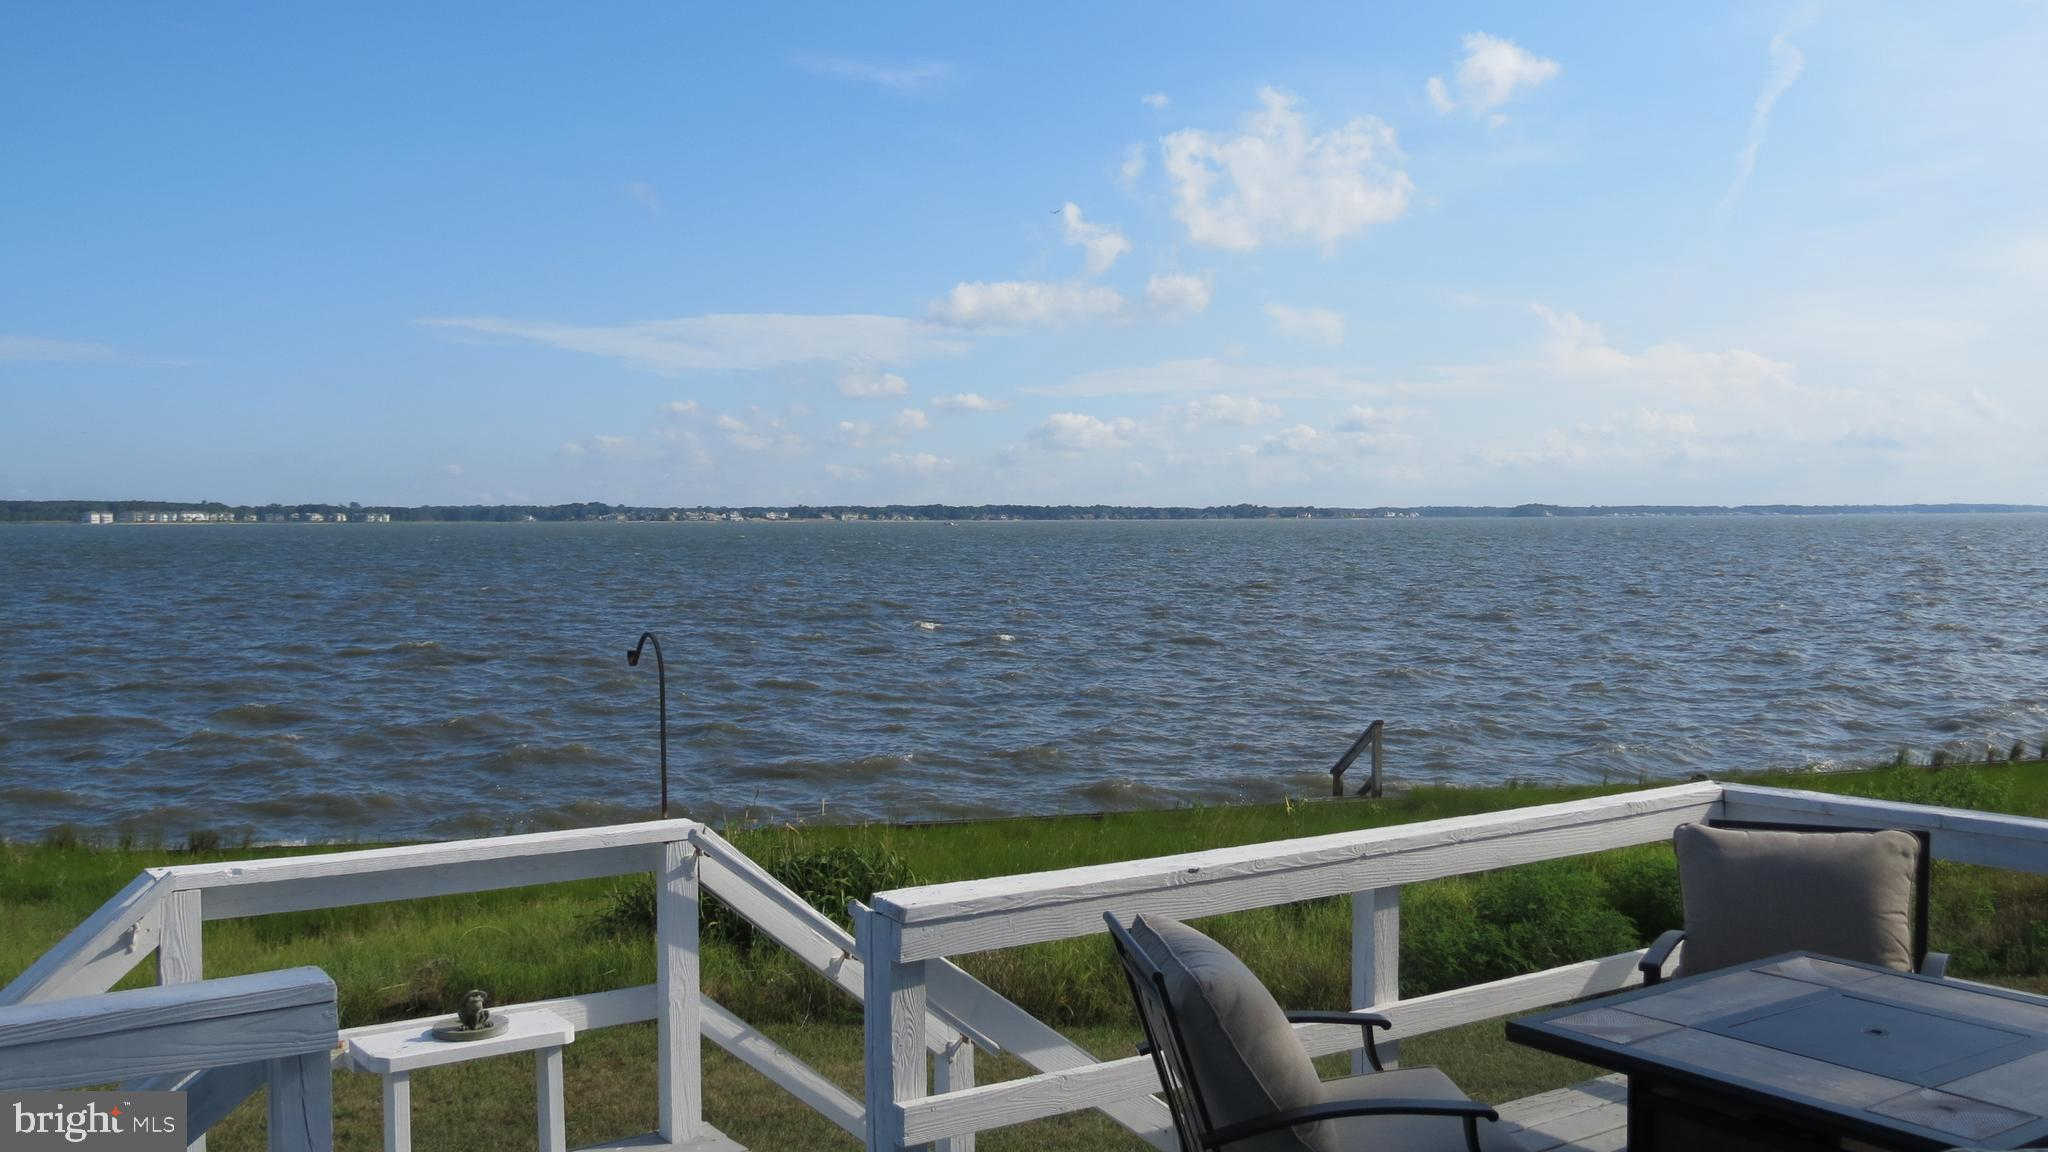 34836 W Harbor Drive #5661, Millsboro, DE 19966 is now new to the market!